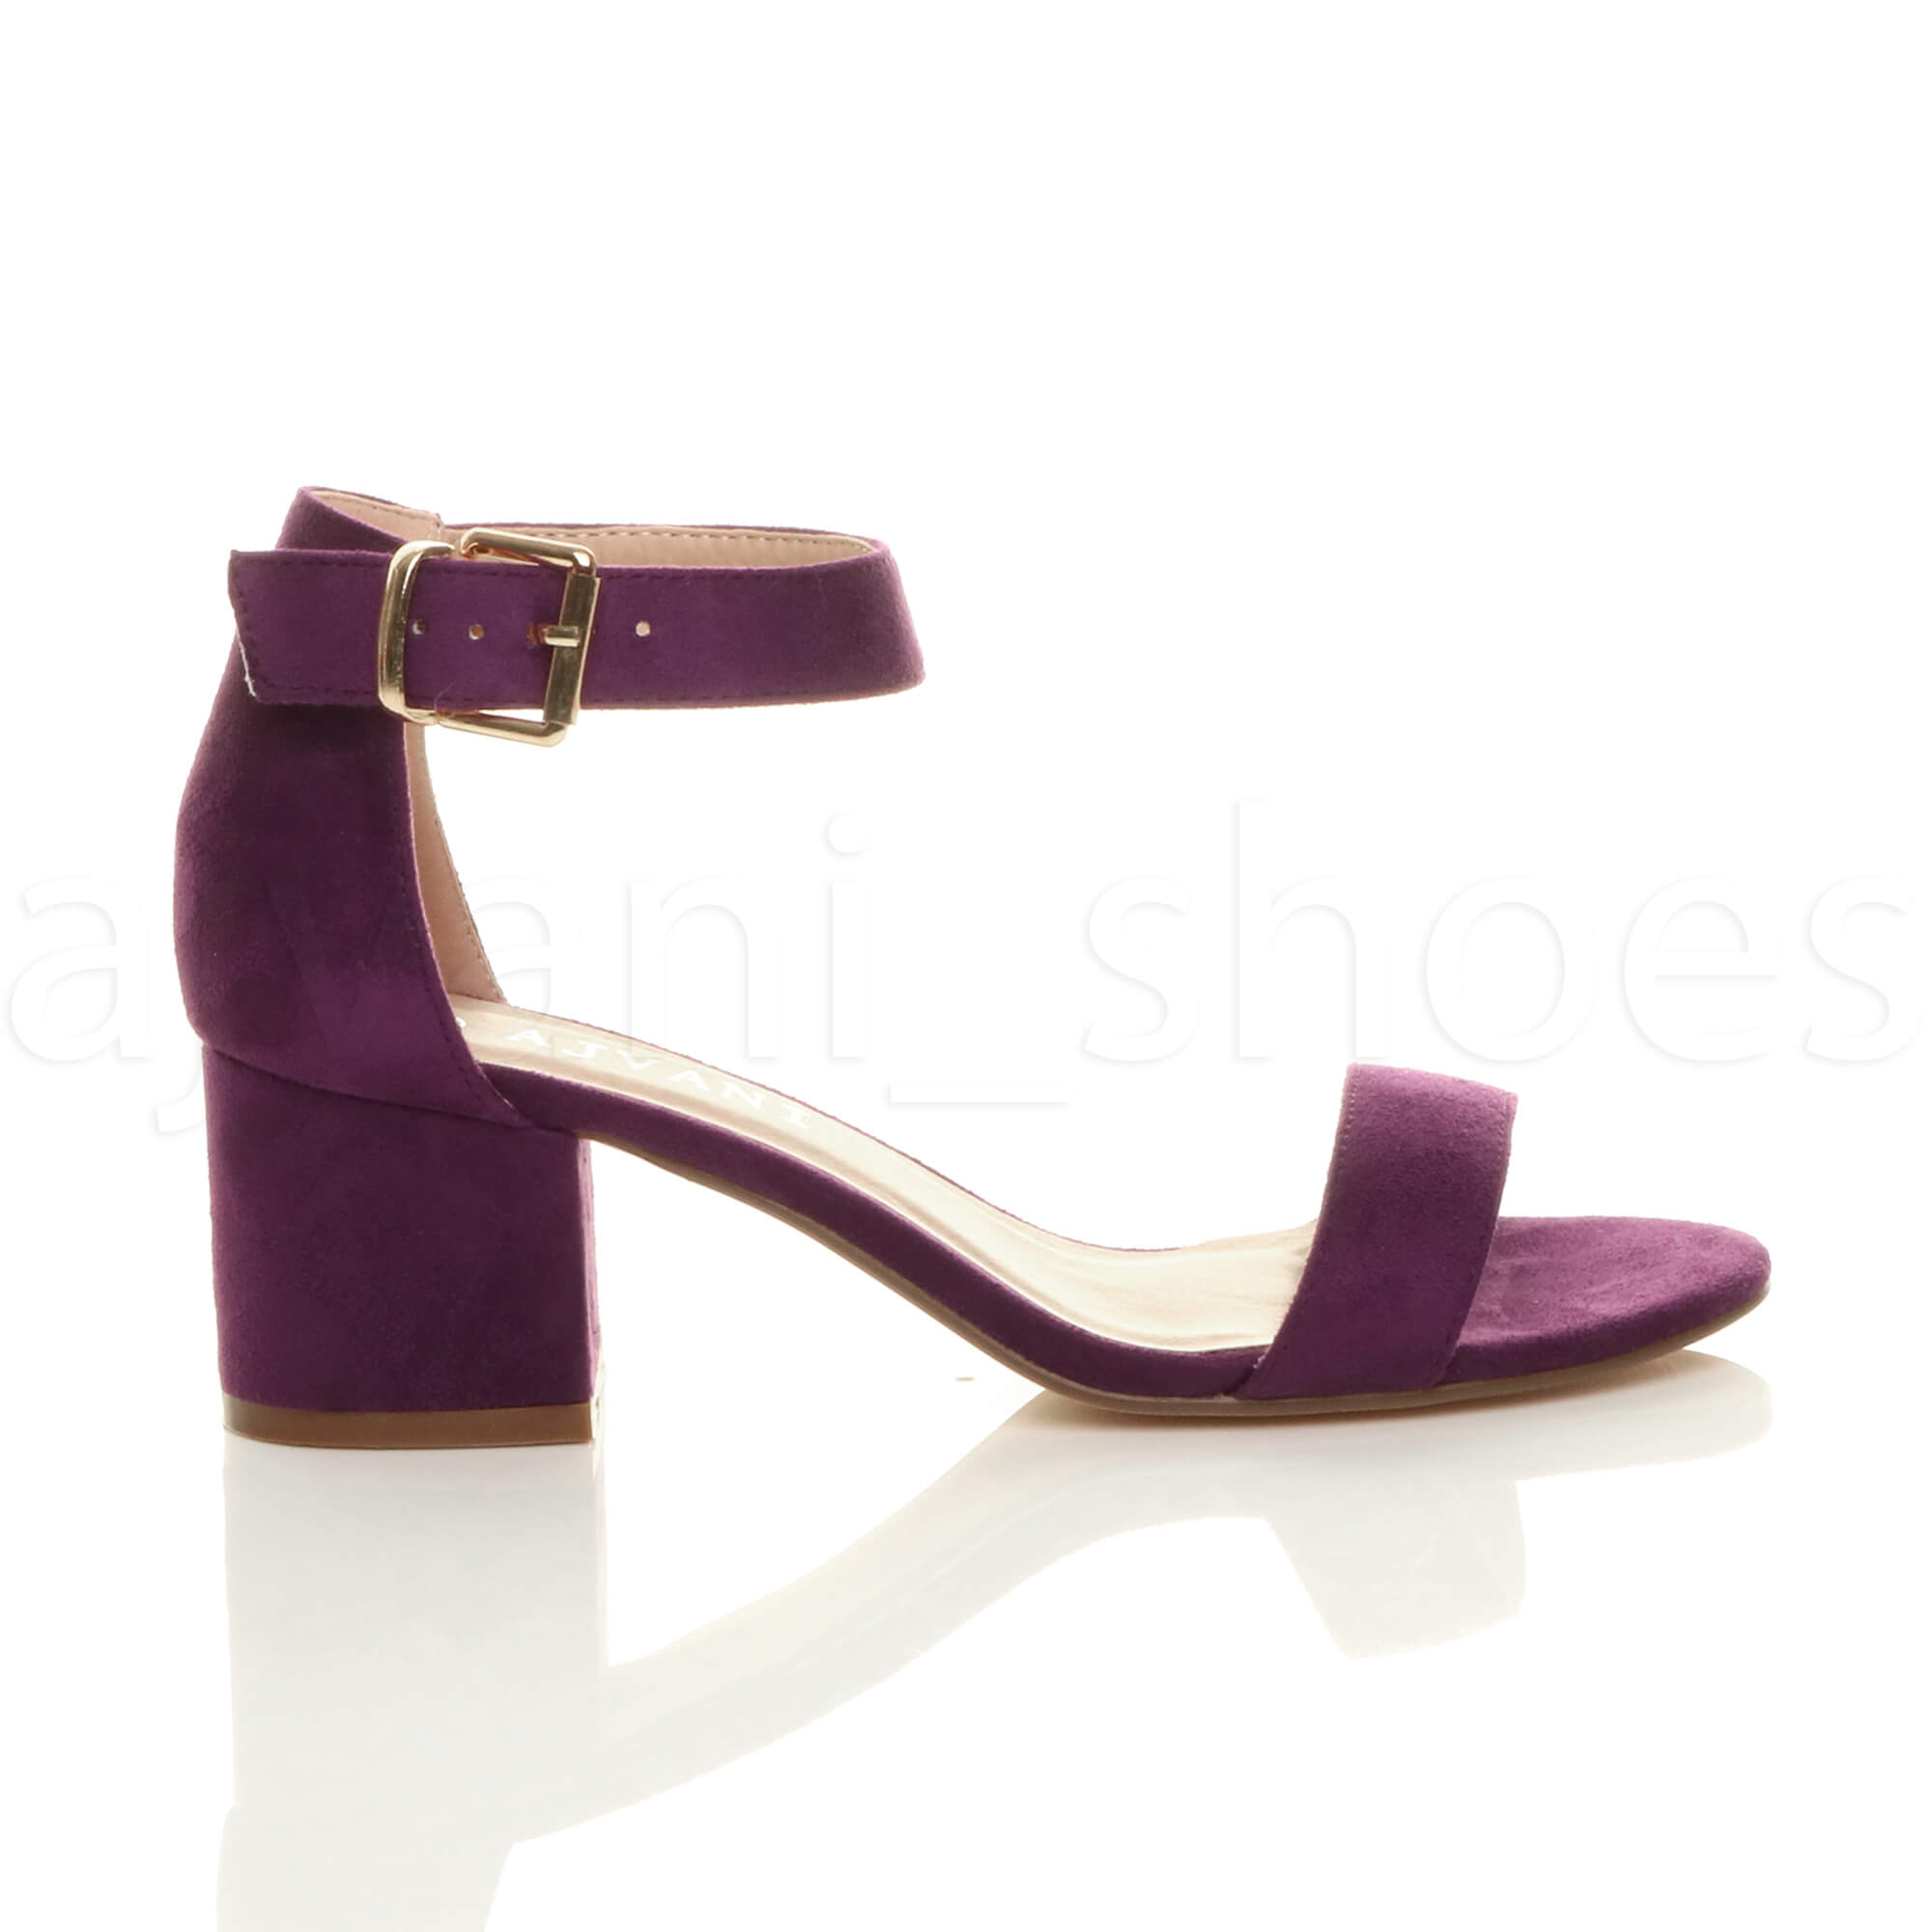 WOMENS-LADIES-LOW-MID-BLOCK-HEEL-ANKLE-STRAP-BUCKLE-PARTY-STRAPPY-SANDALS-SIZE thumbnail 134